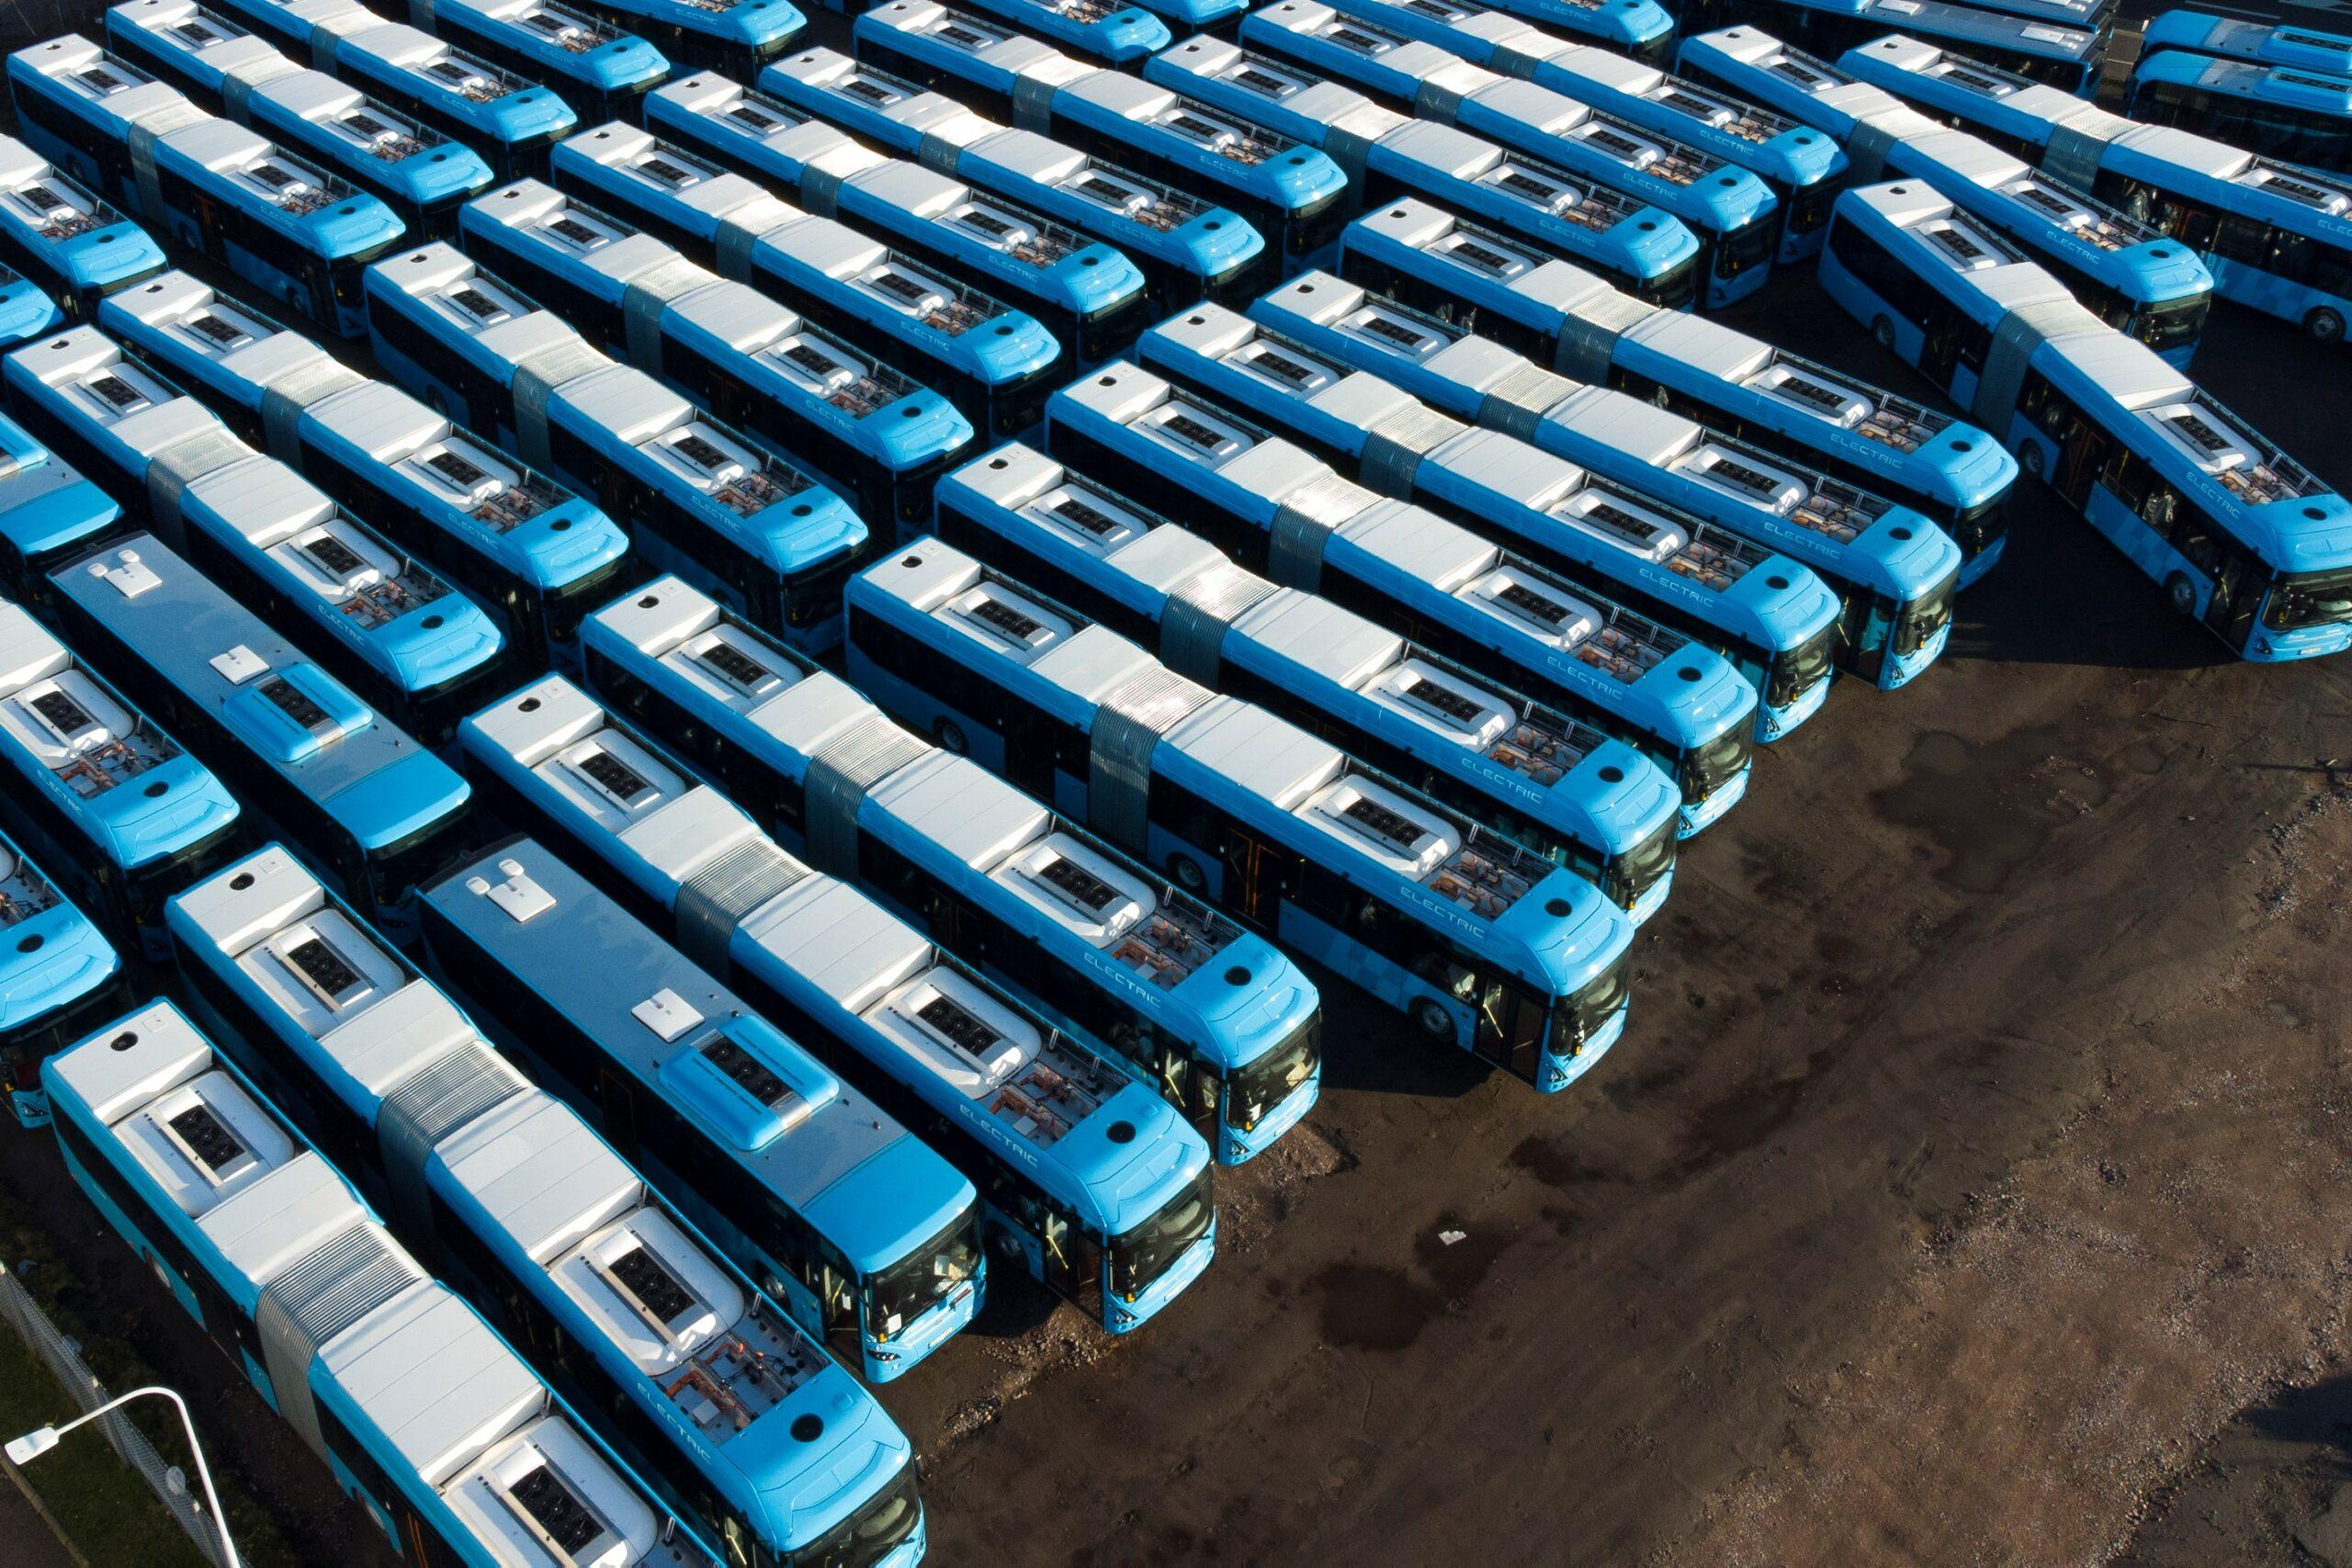 Aerial view of lots of buses parked close together.